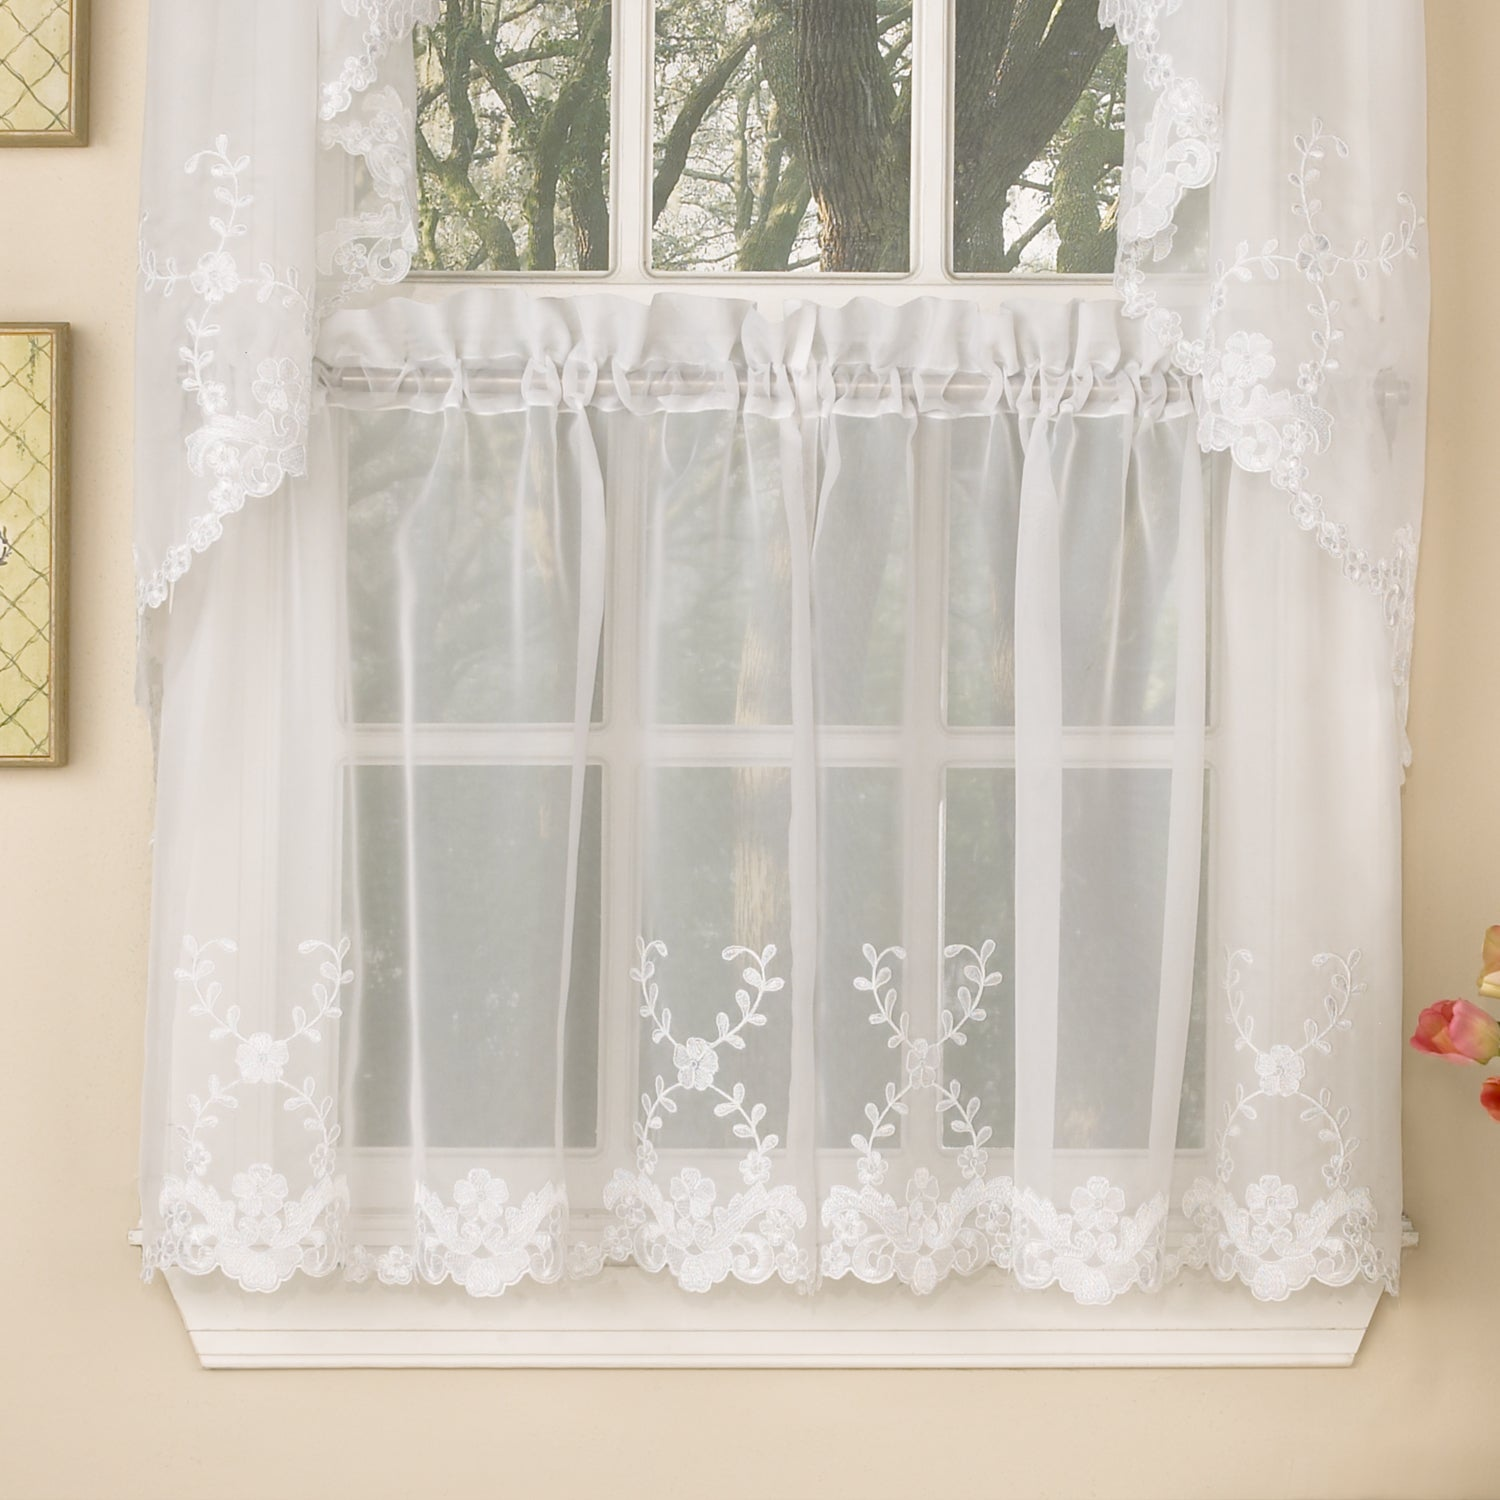 drapes swag with eyelet sheer light green bedroom valance curtains itm valances door curtain blackout pleats net